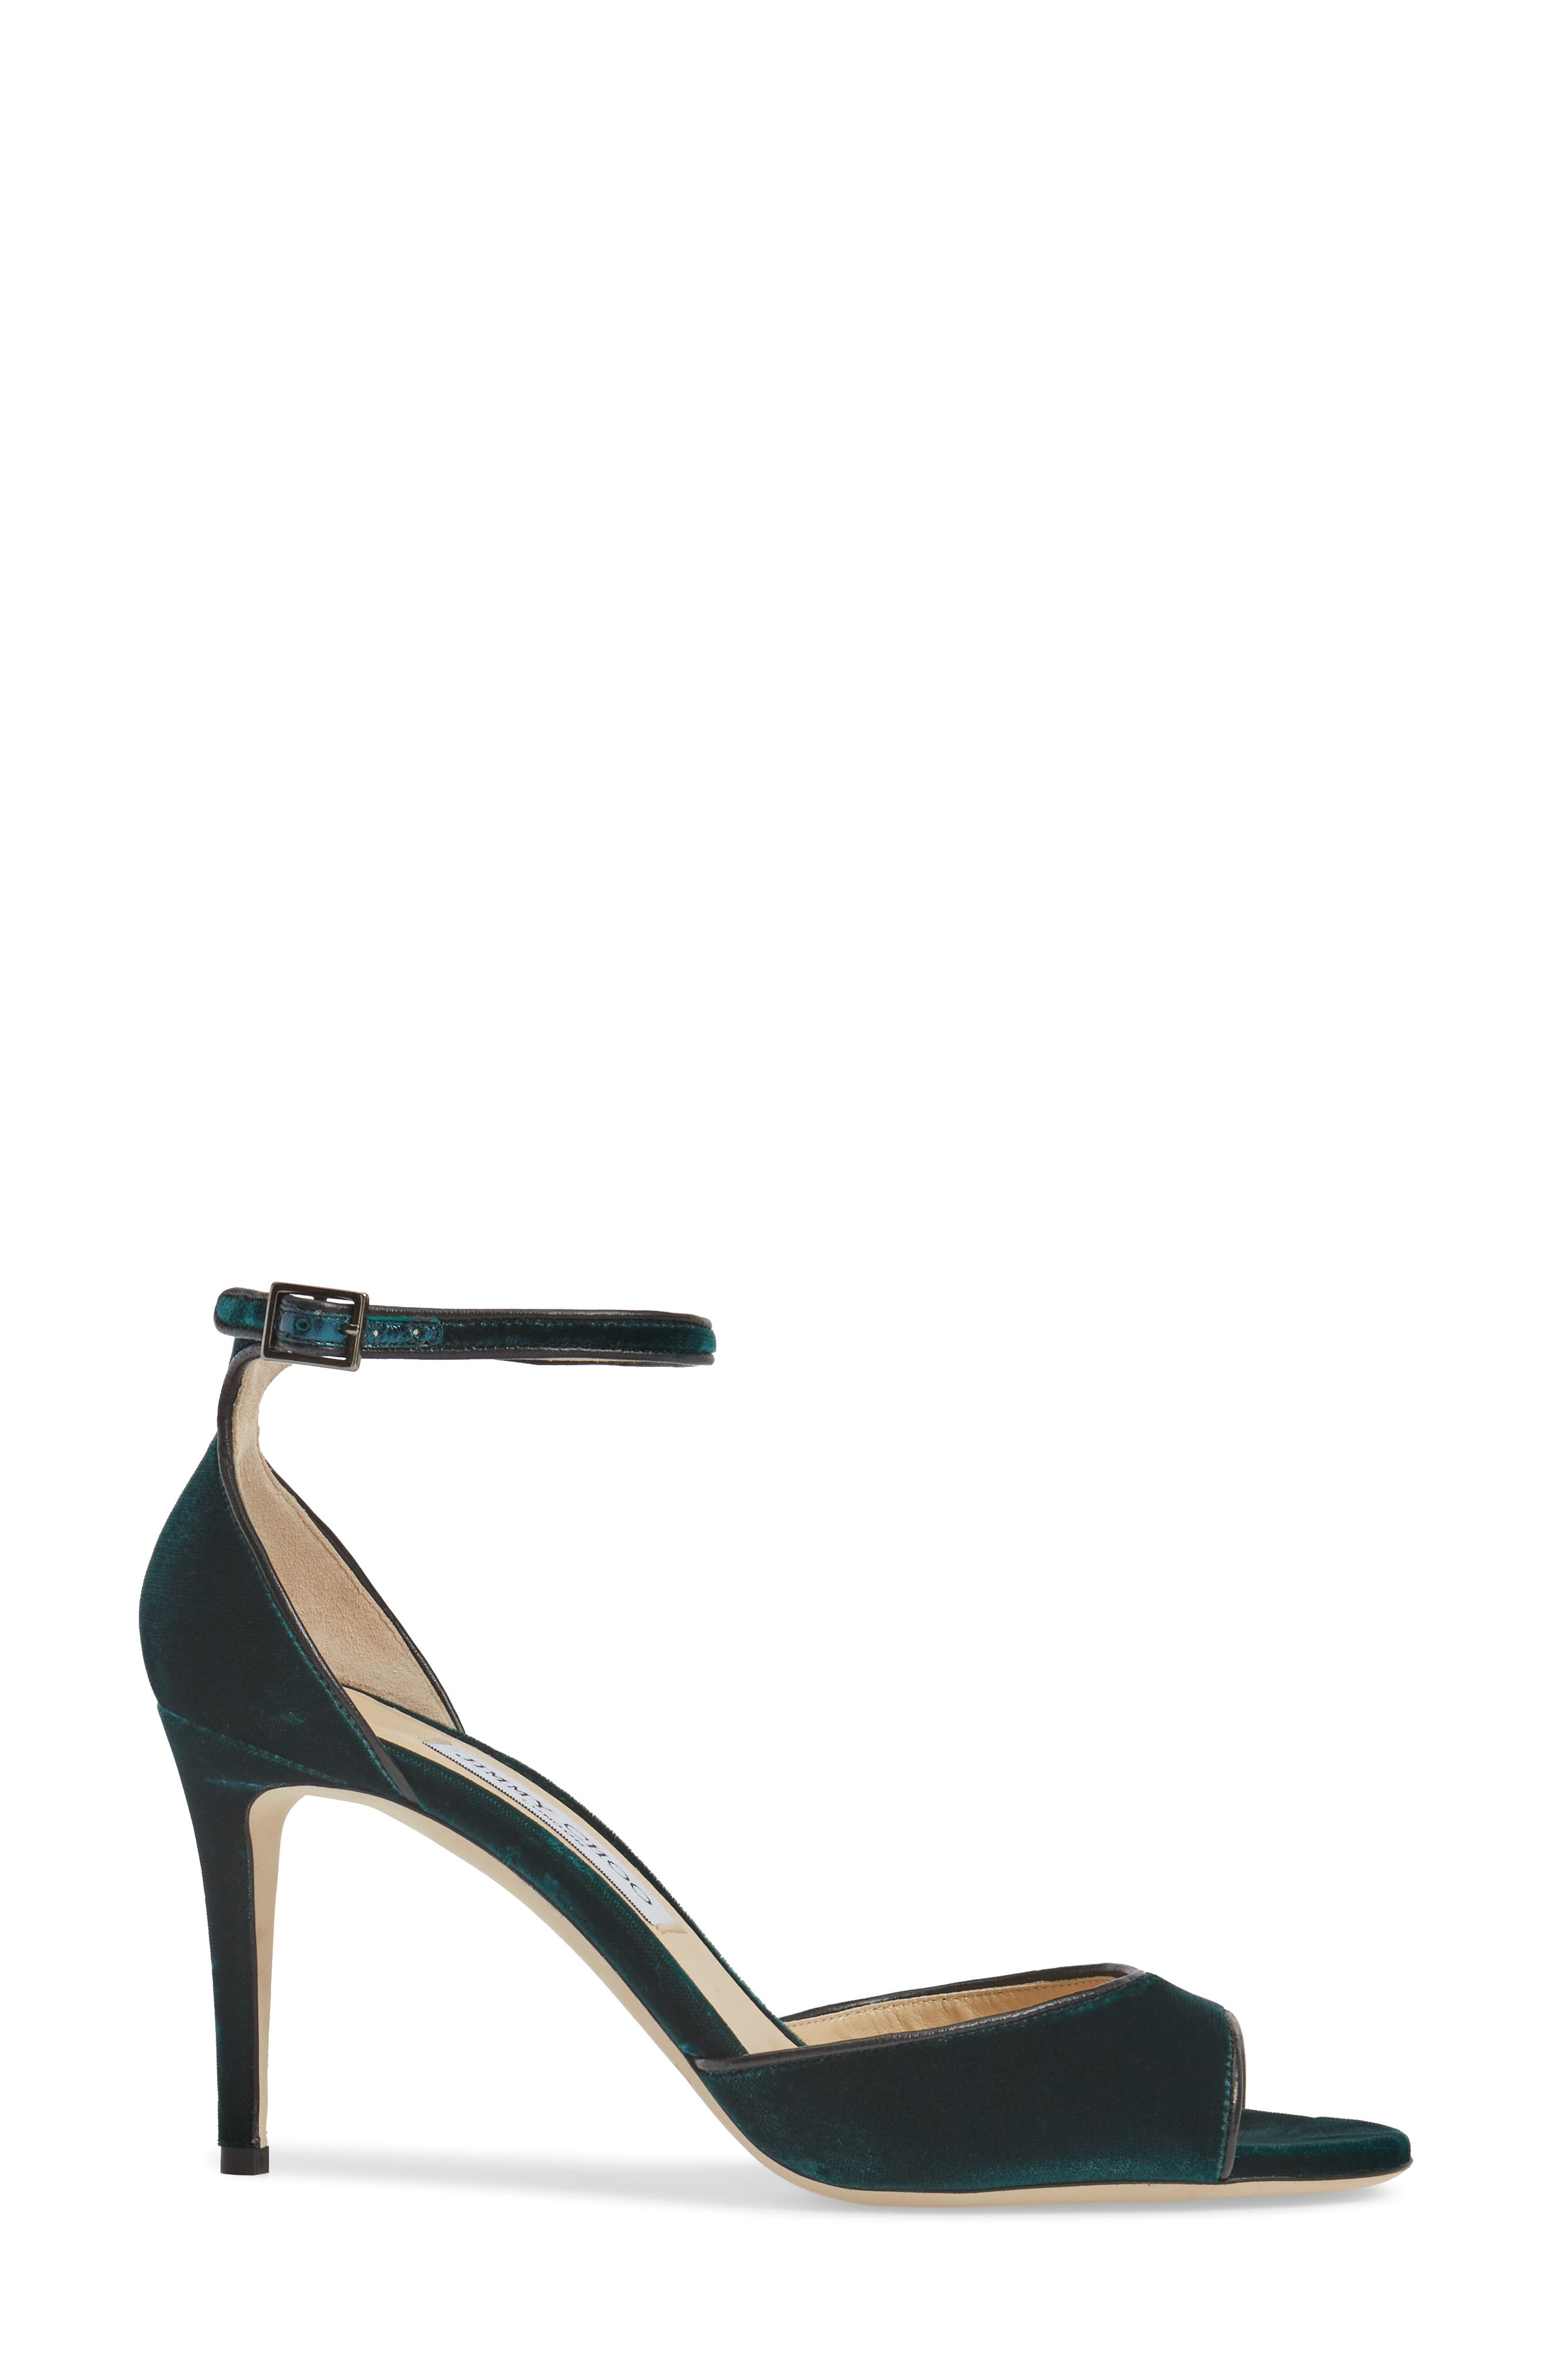 JIMMY CHOO,                             Annie Ankle Strap Sandal,                             Alternate thumbnail 3, color,                             300